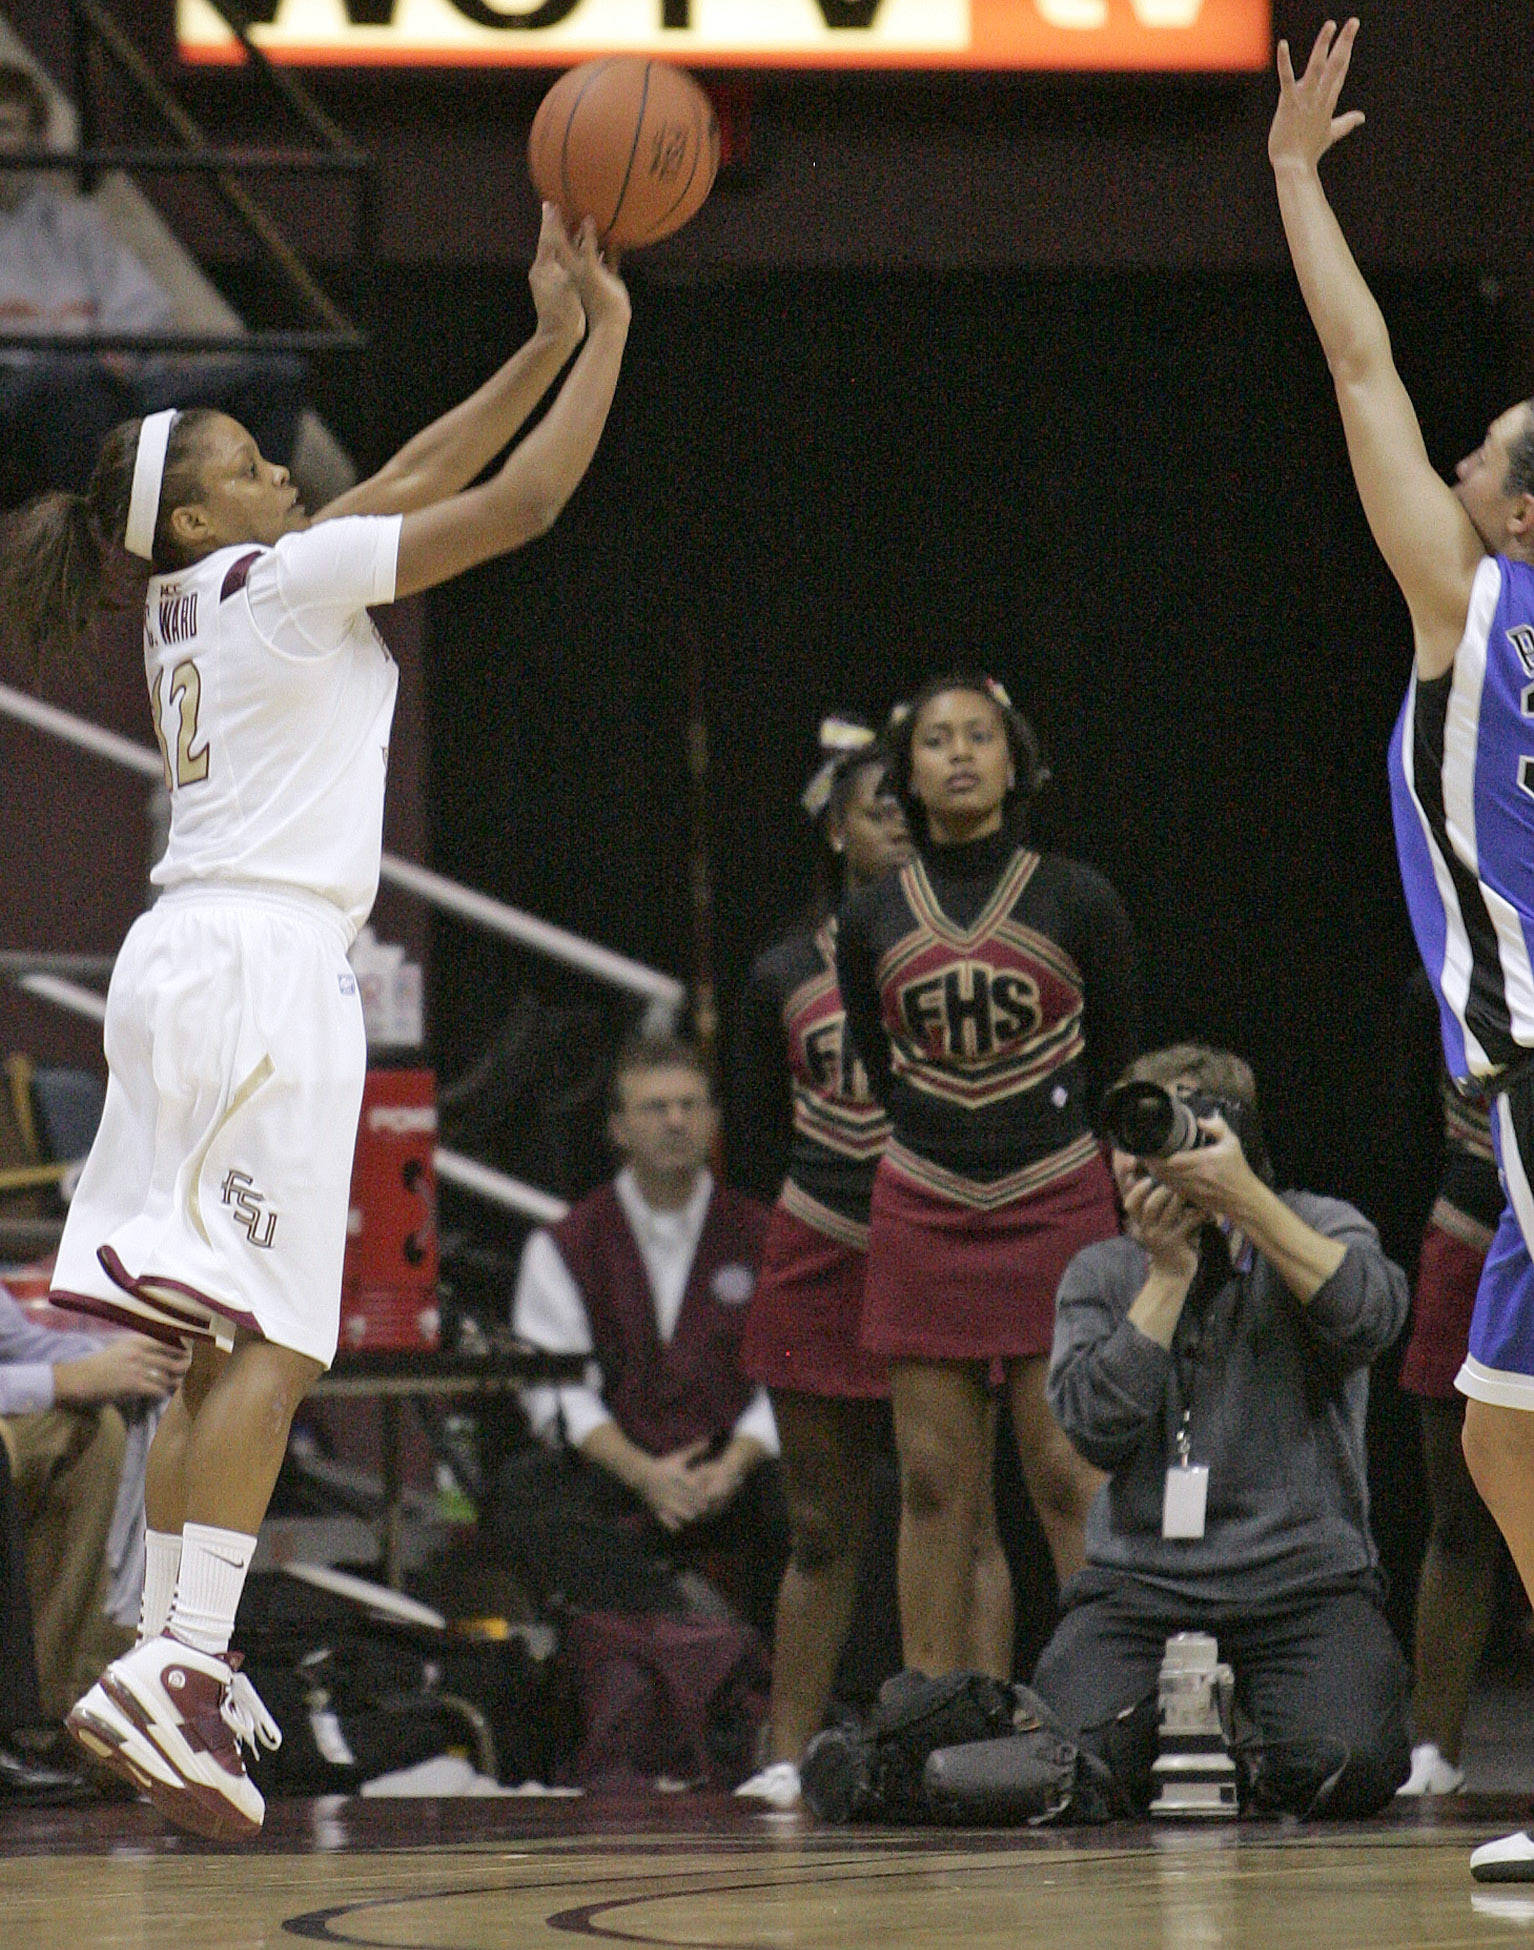 Florida State's Courtney Ward shoots against Duke  during an NCAA college basketball game on Friday, Jan. 14, 2011, in Tallahassee, Fla. Ward led all scorers with 25 points but Duke won 87-70. (AP Photo/Steve Cannon)